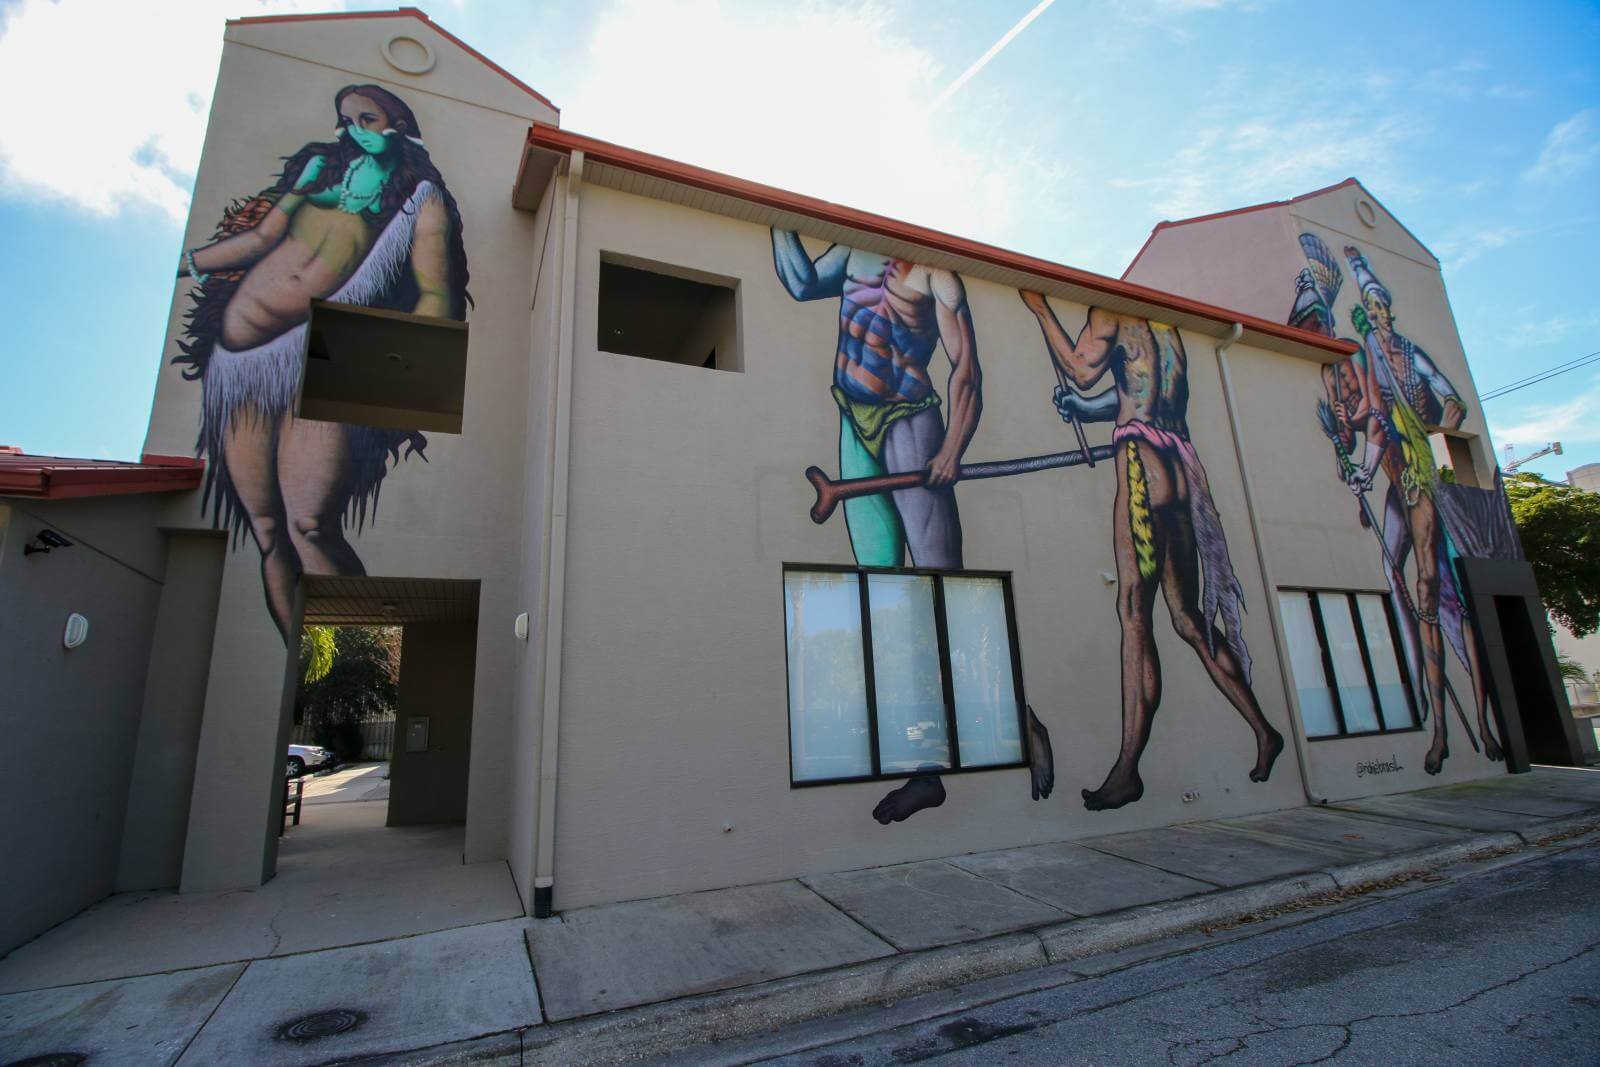 Richie Brasil larger-than-life depiction of Florida's earliest inhabitants - the Timucua Indians. Sarasota, Florida street art and murals. Photo credit Laurén Ettinger. Must Do Visitor Guides | MustDo.com